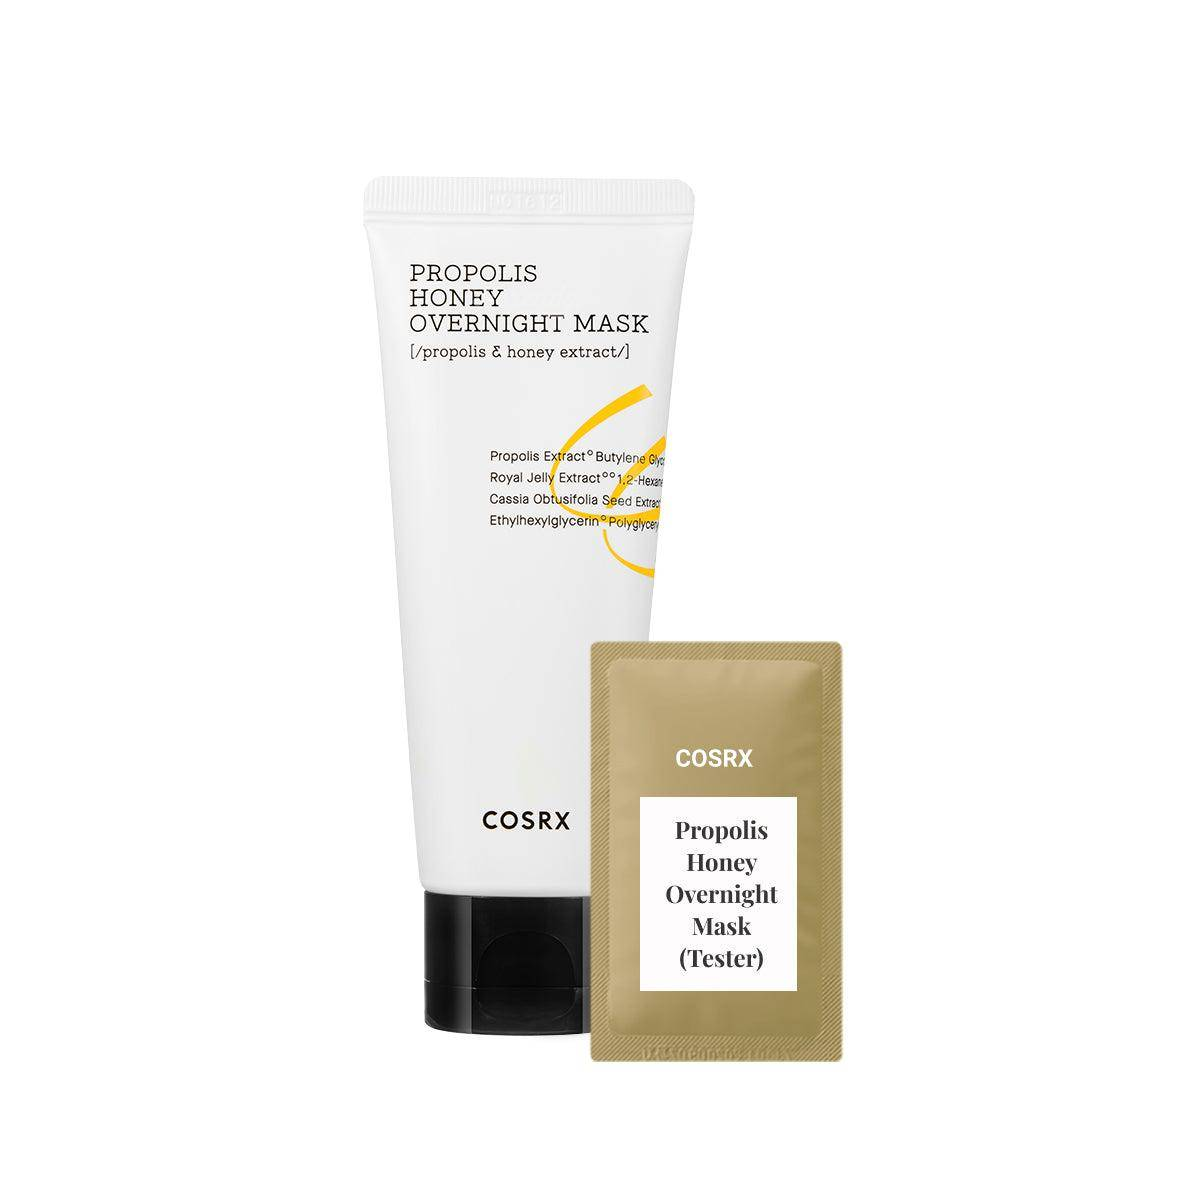 (C09-Tester) Cosrx - Ultimate Moisturizing Honey Overnight Mask 1ml Gece Maskesi Korendy Türkiye Turkey Kore Kozmetik Kbeauty Cilt Bakım